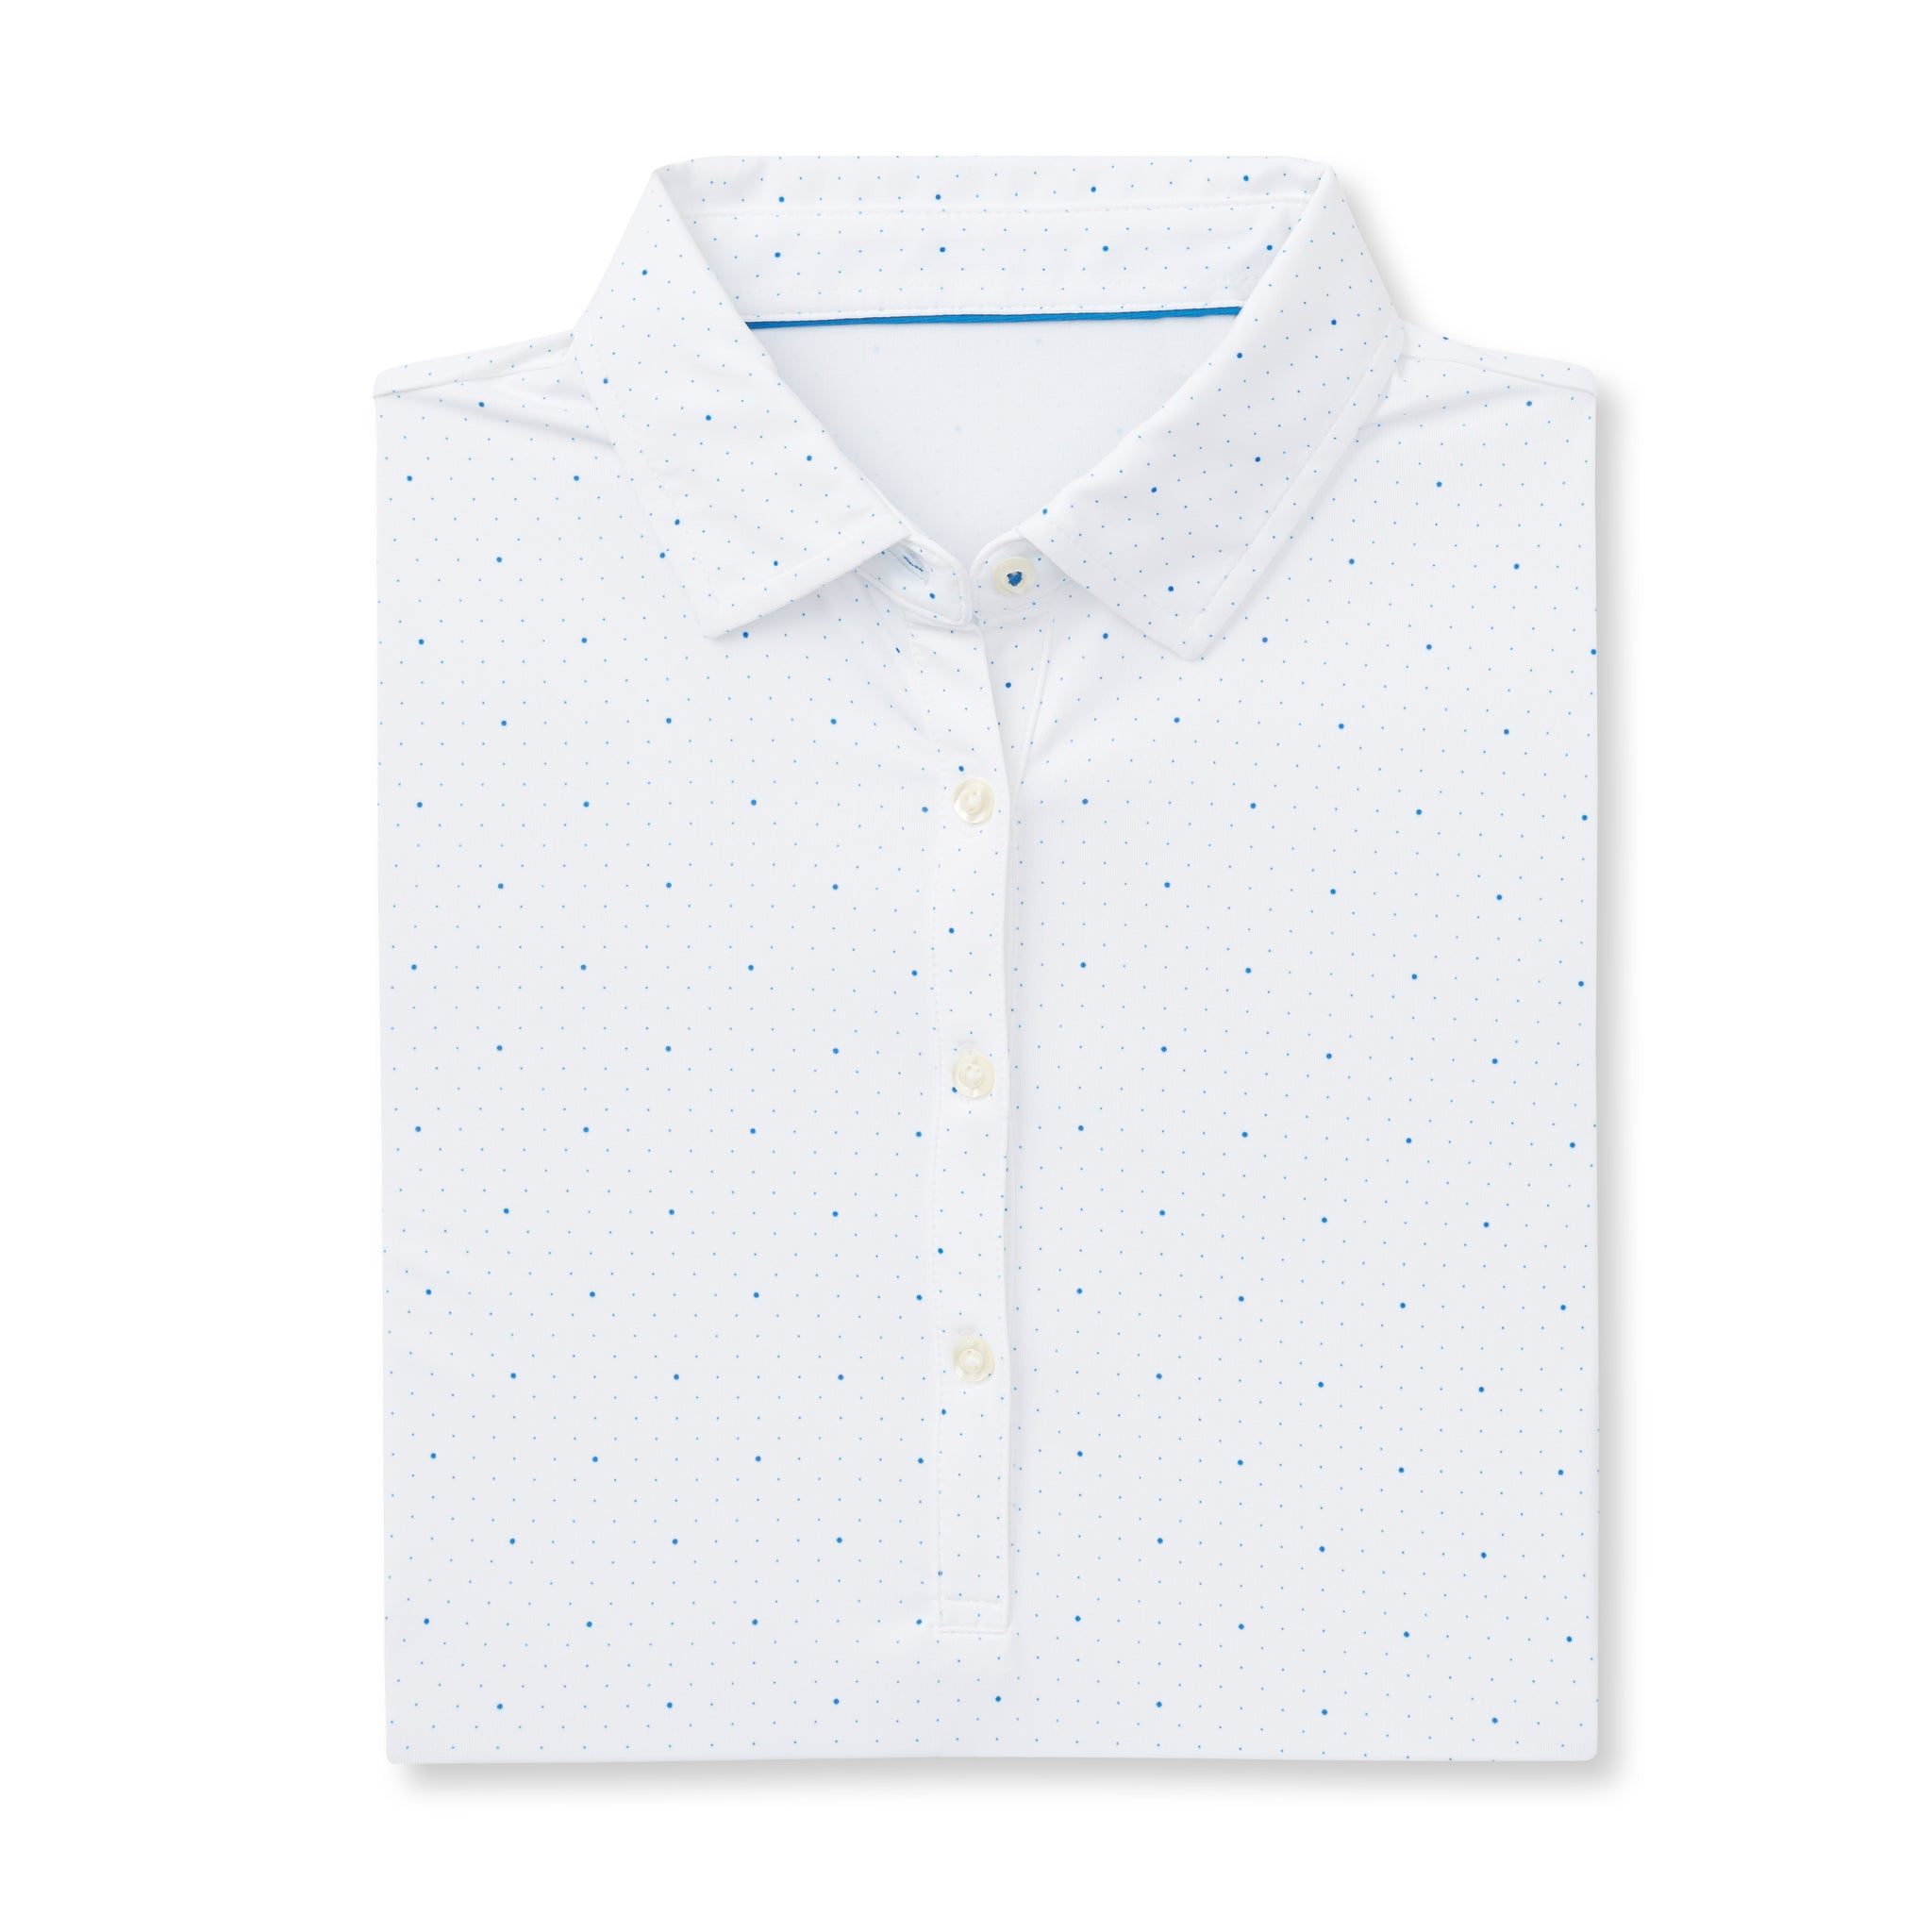 THE WOMEN'S SYWALKER POLO - White/Nautical IS76803W